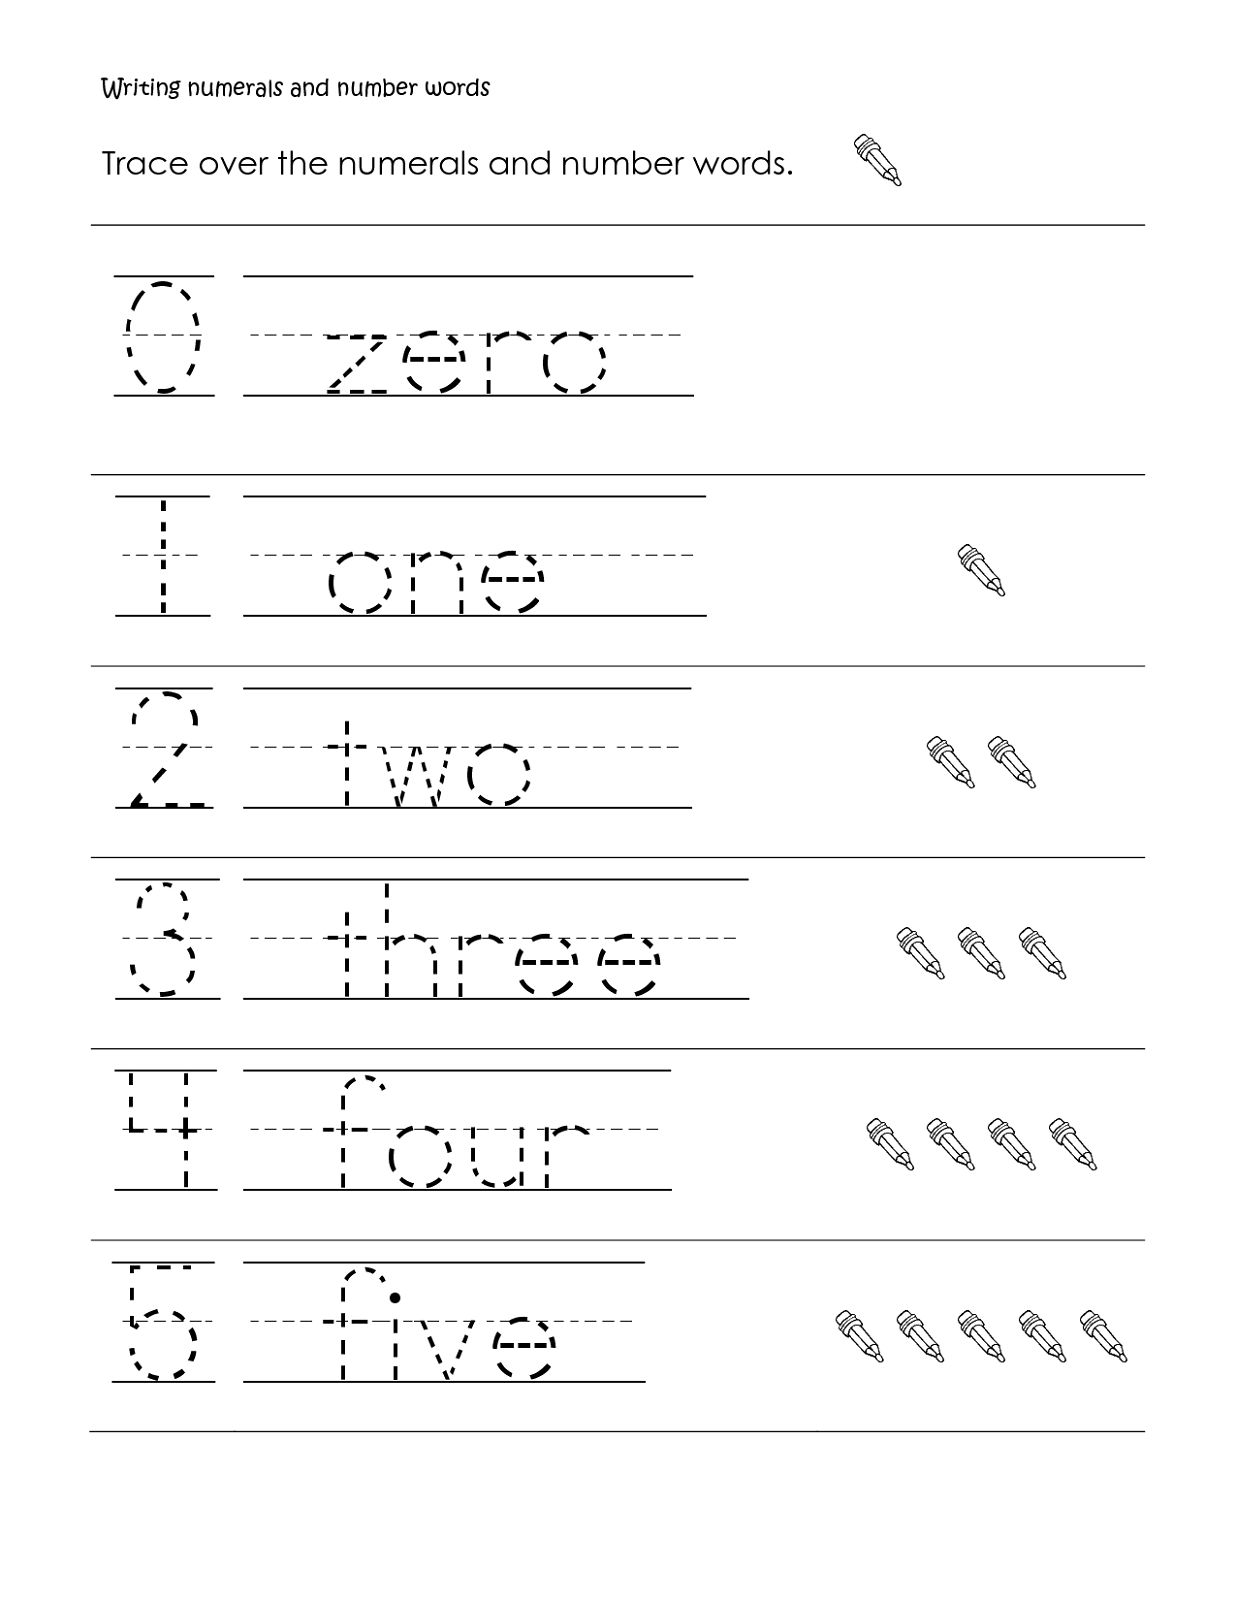 Numbers tracing printables for preschoolers - Number Trace Worksheet Children